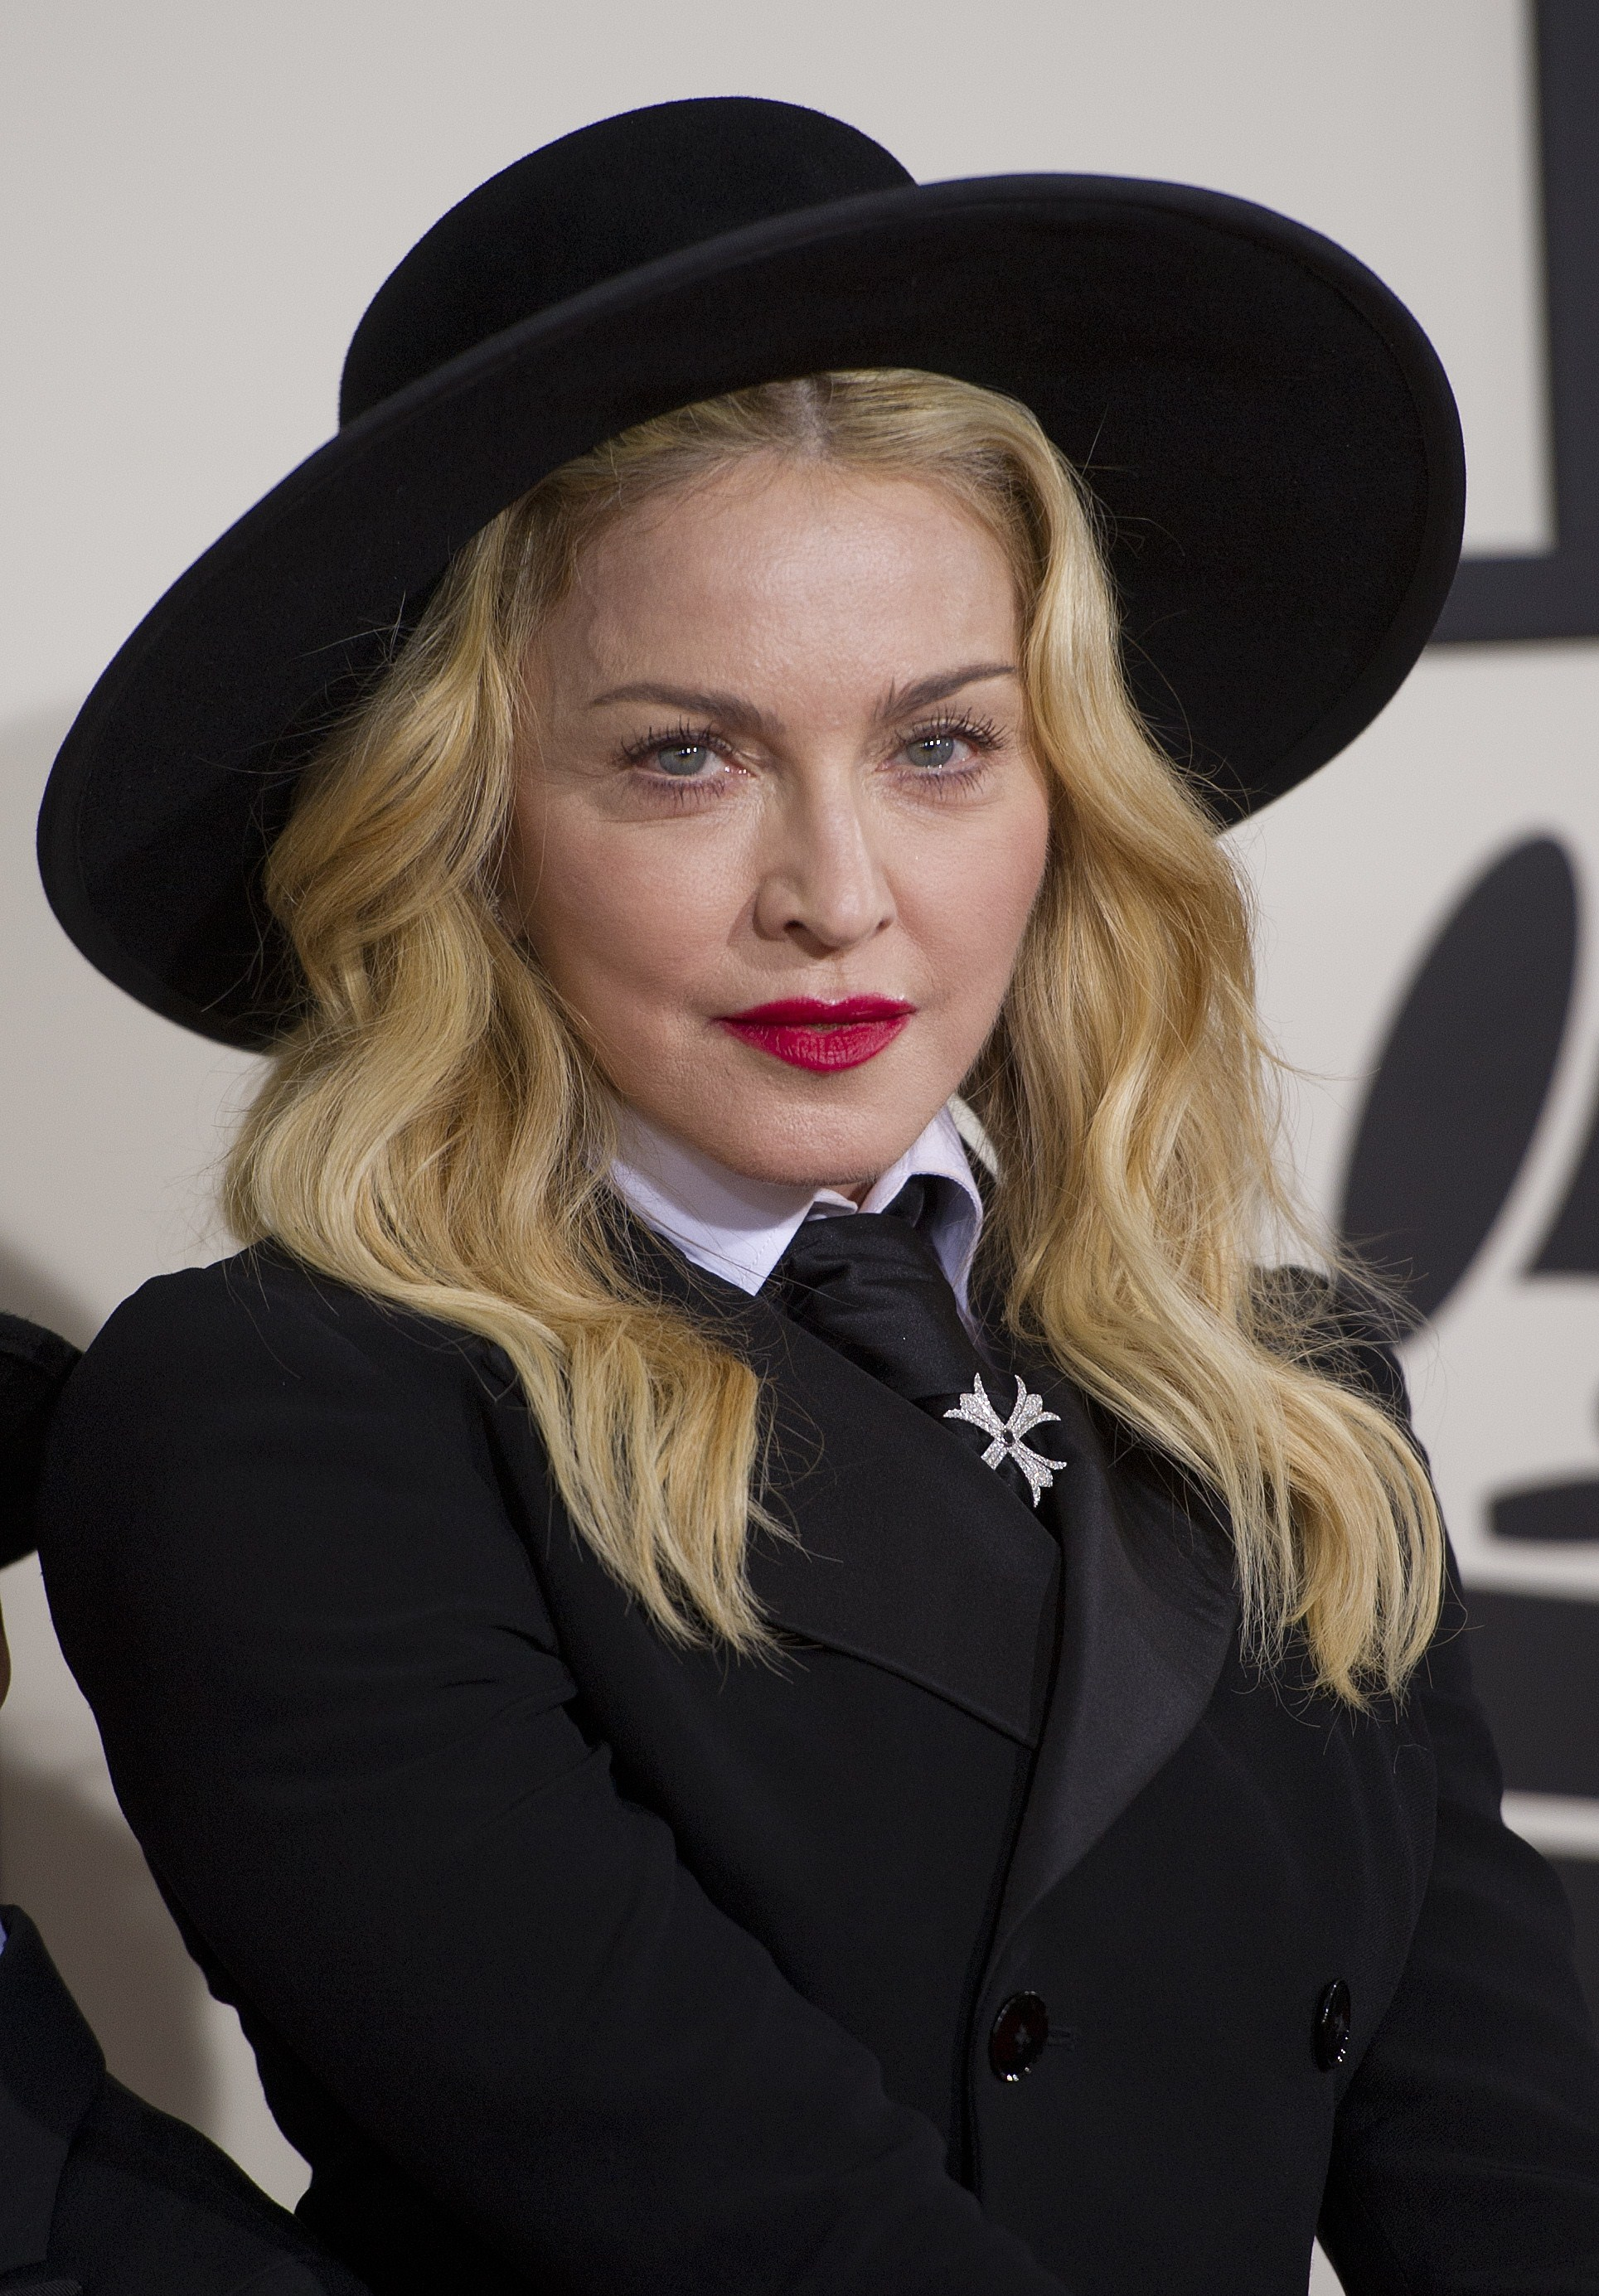 Madonna arrives on the red carpet for the 56th Grammy Awards at the Staples Center in Los Angeles on Jan. 26, 2014.